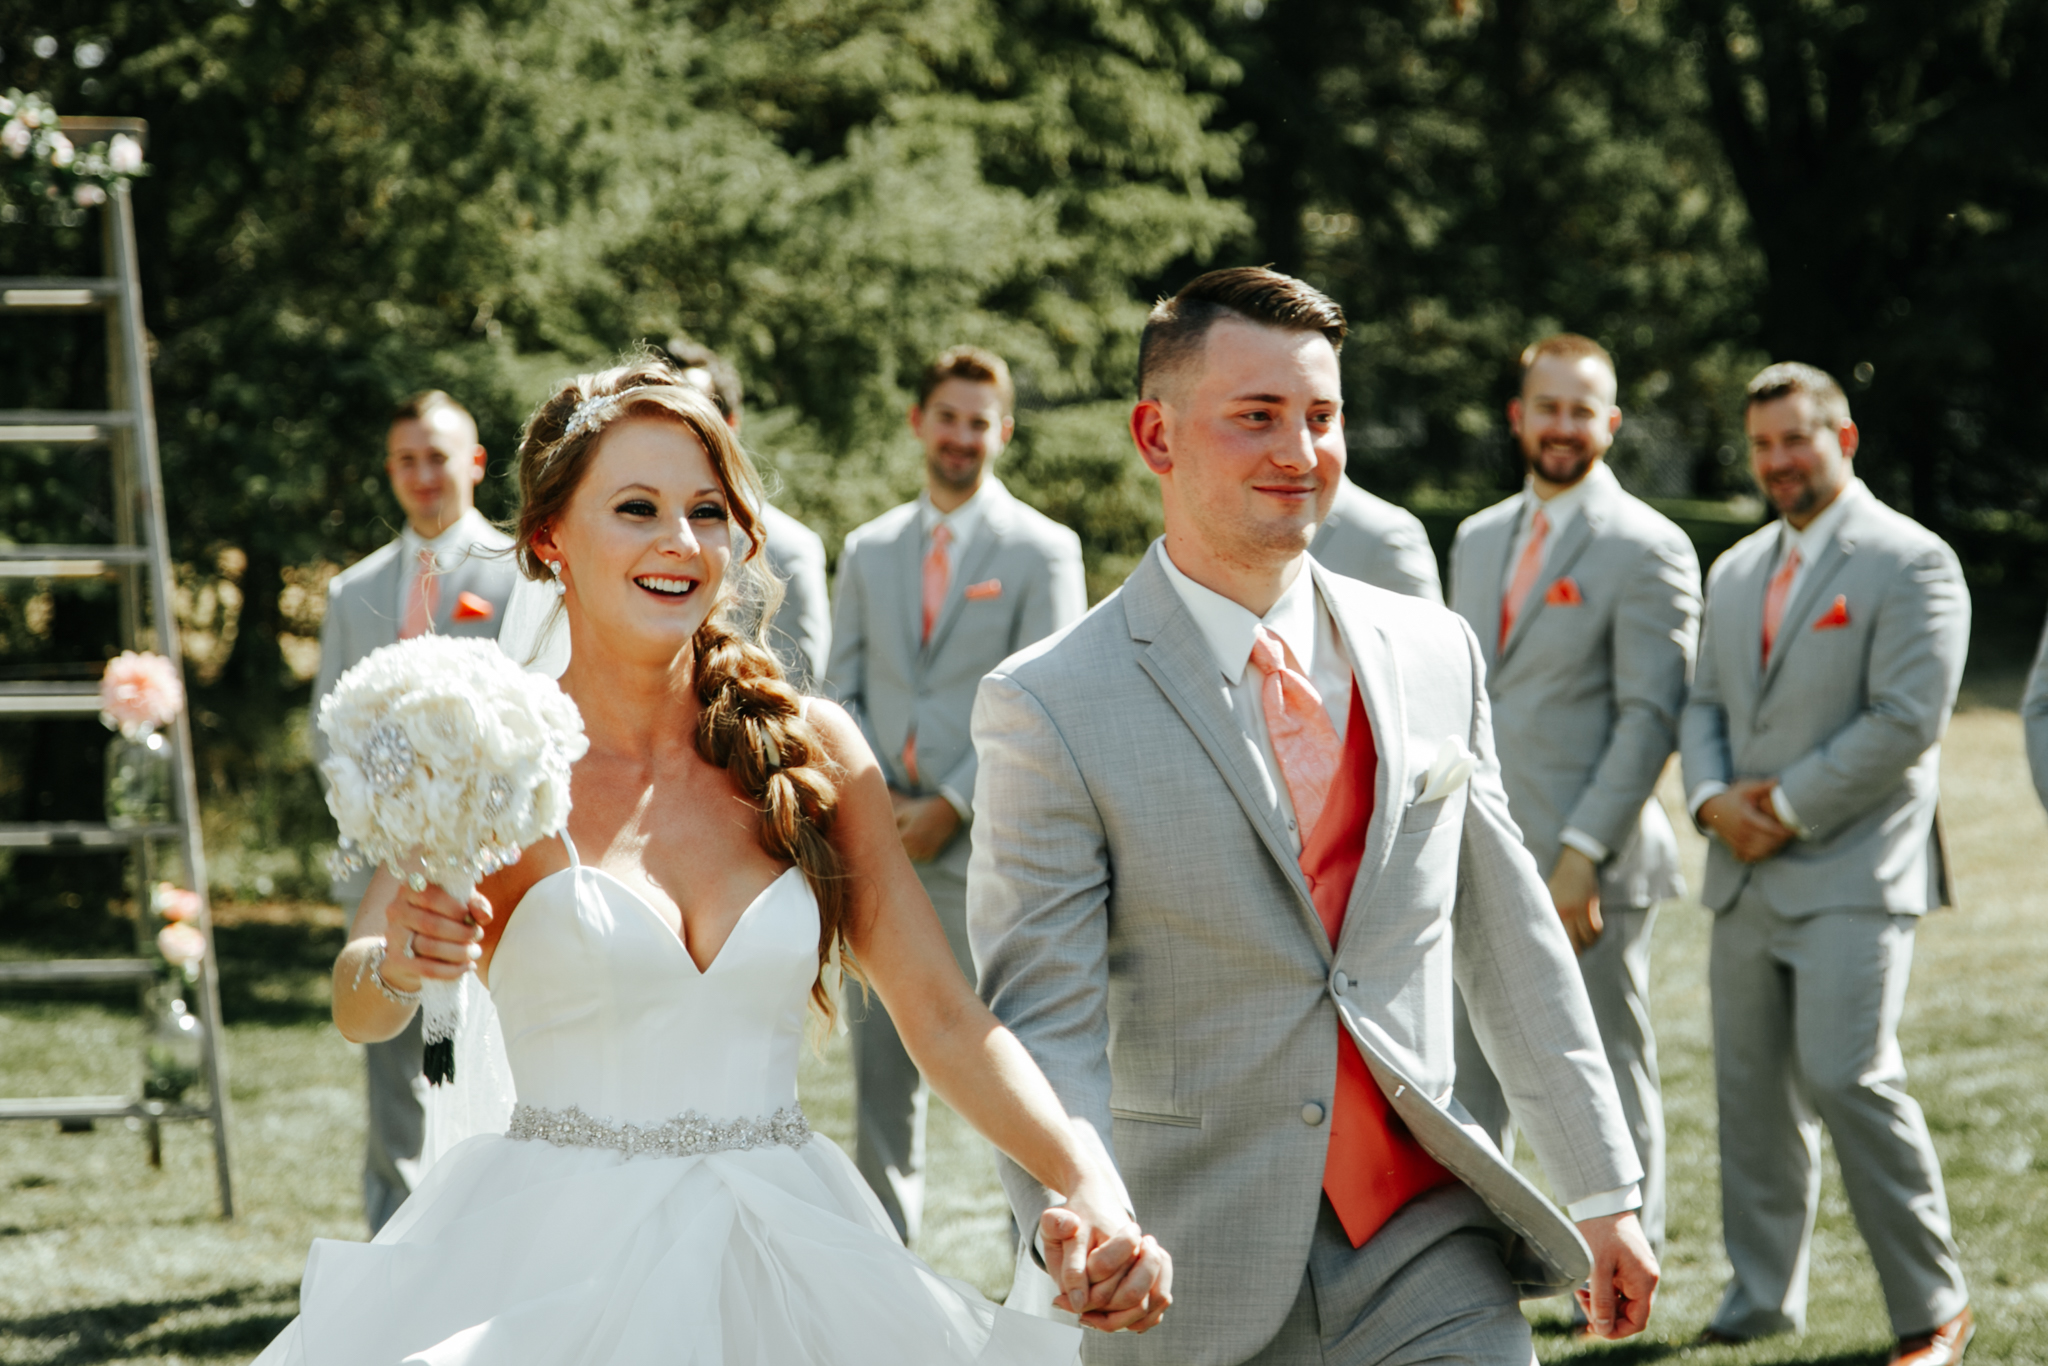 lethbridge-wedding-photography-love-and-be-loved-photographer-sean-sharla-henderson-lake-wedding-image-picture-photo-42.jpg